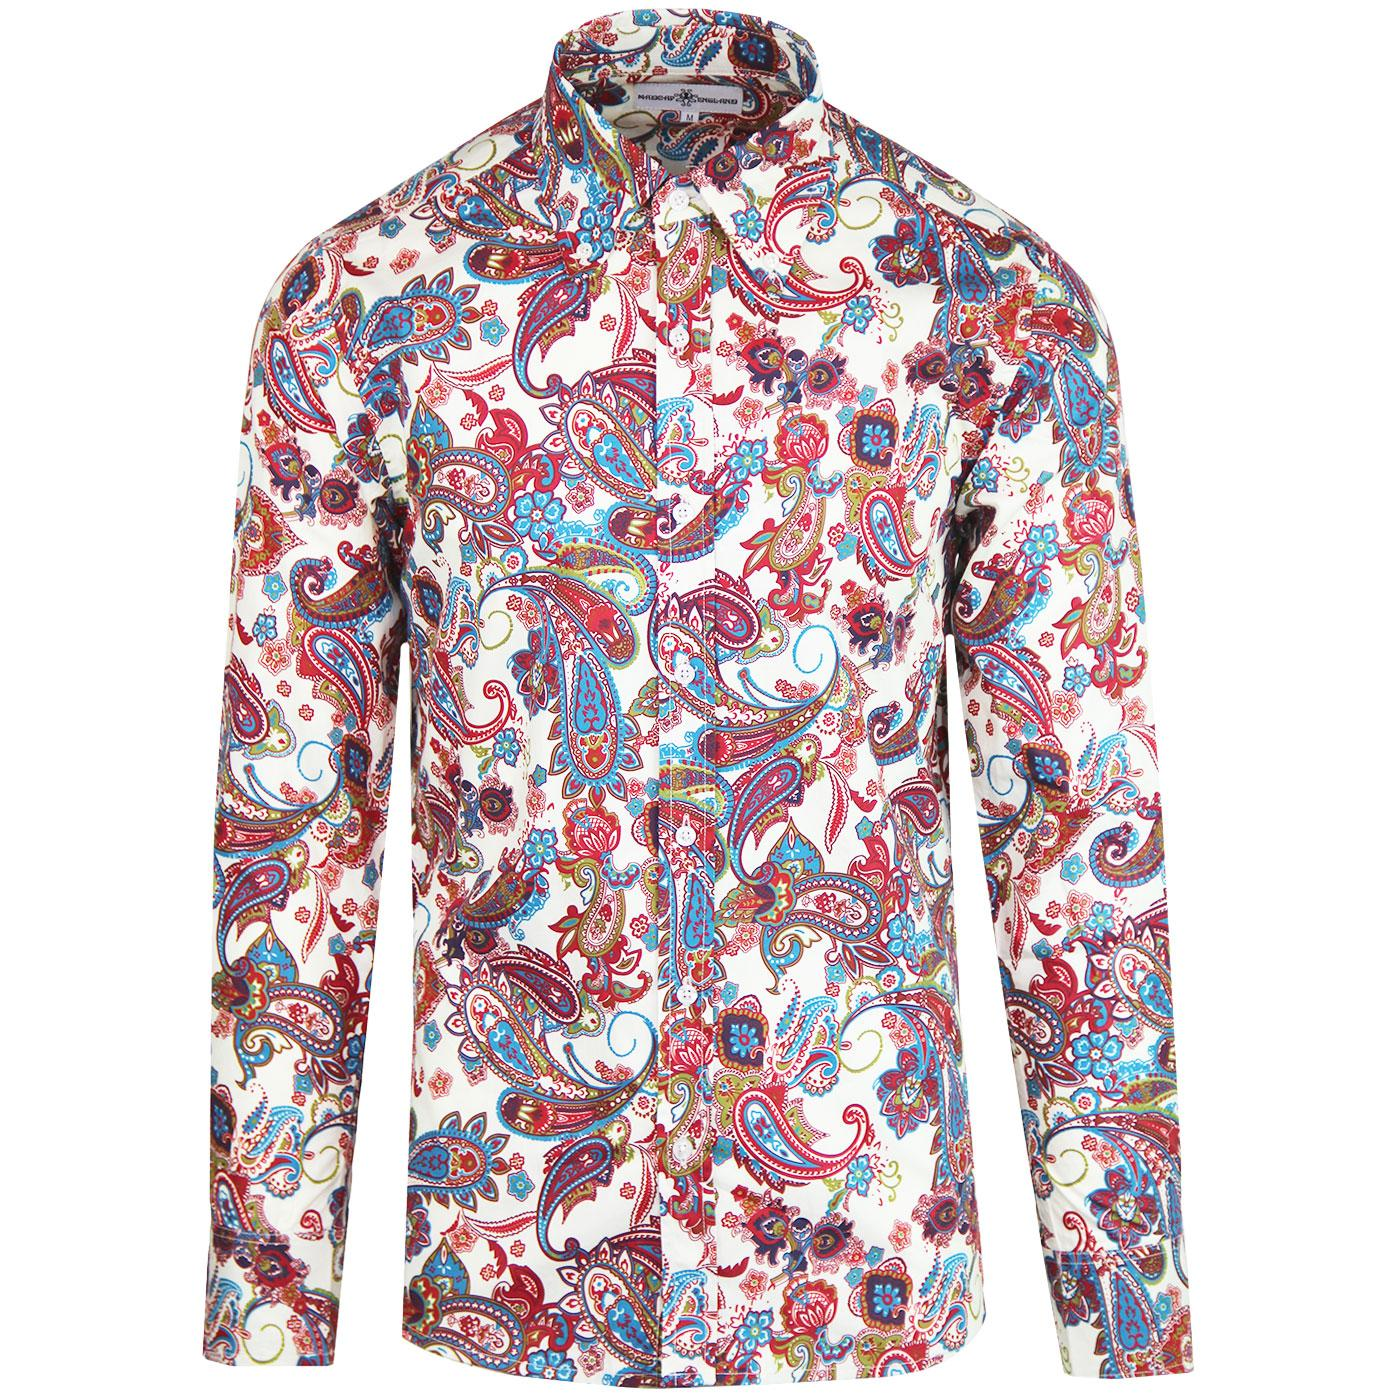 Madcap England Trip 1960s Mod Button Down Paisley Shirt in Red/Ecru.